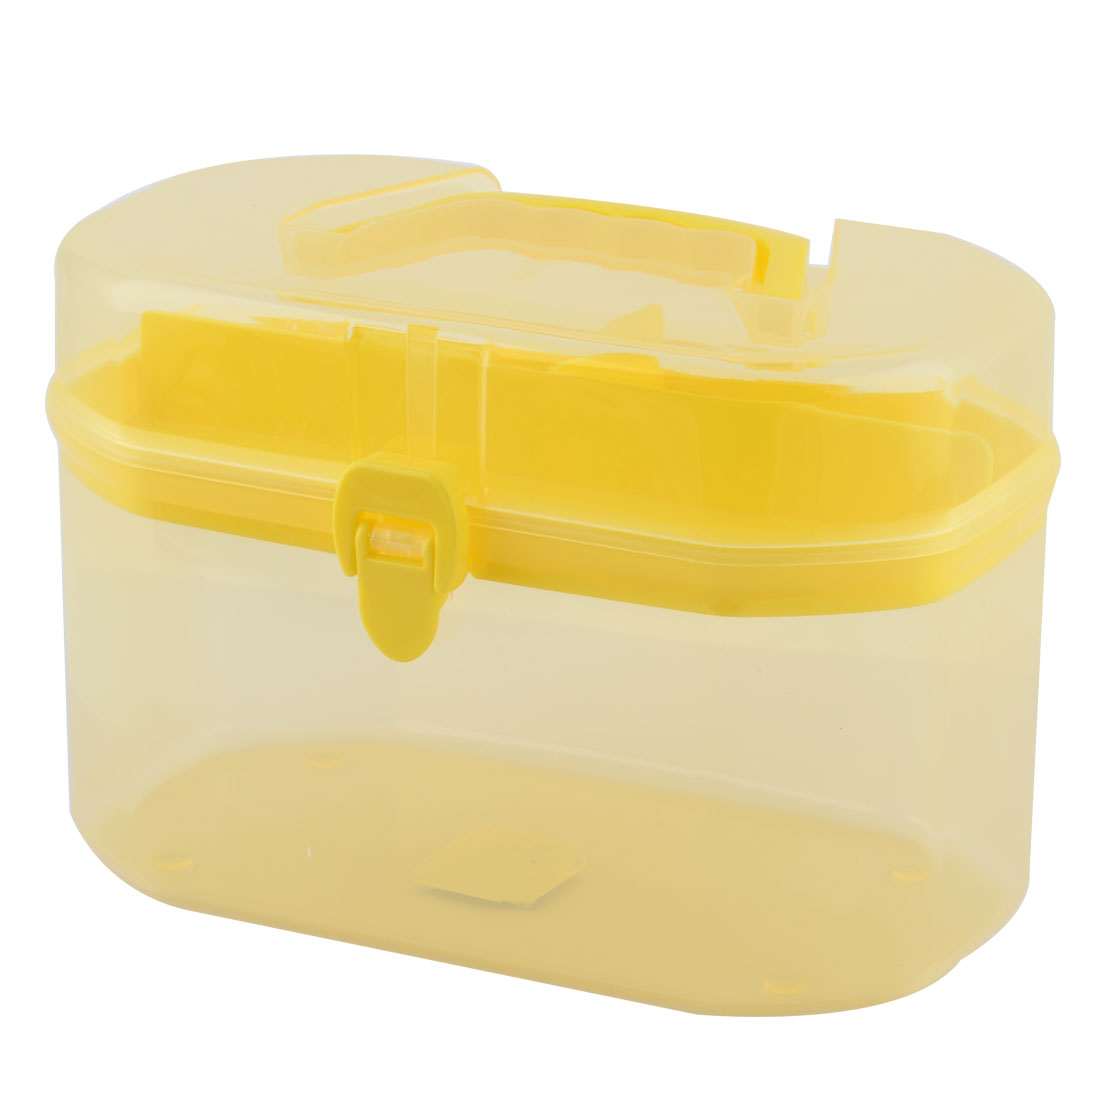 Plastic Household Rectangular Shaped 2 Layers Tool Storage Box Case Yellow